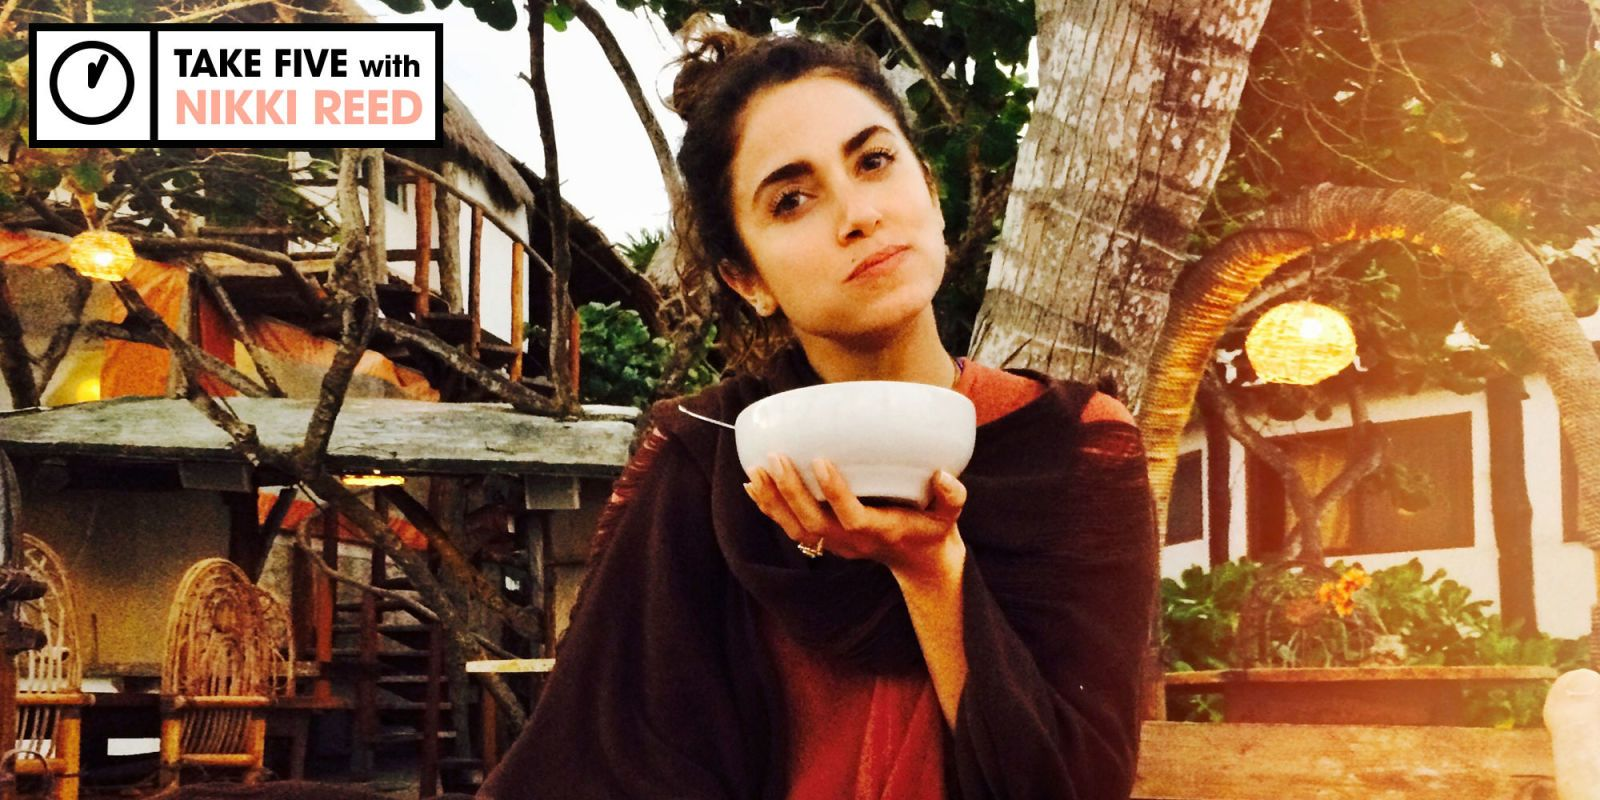 Nikki Reed Has a 5Minute Cleanse for You Nikki reed